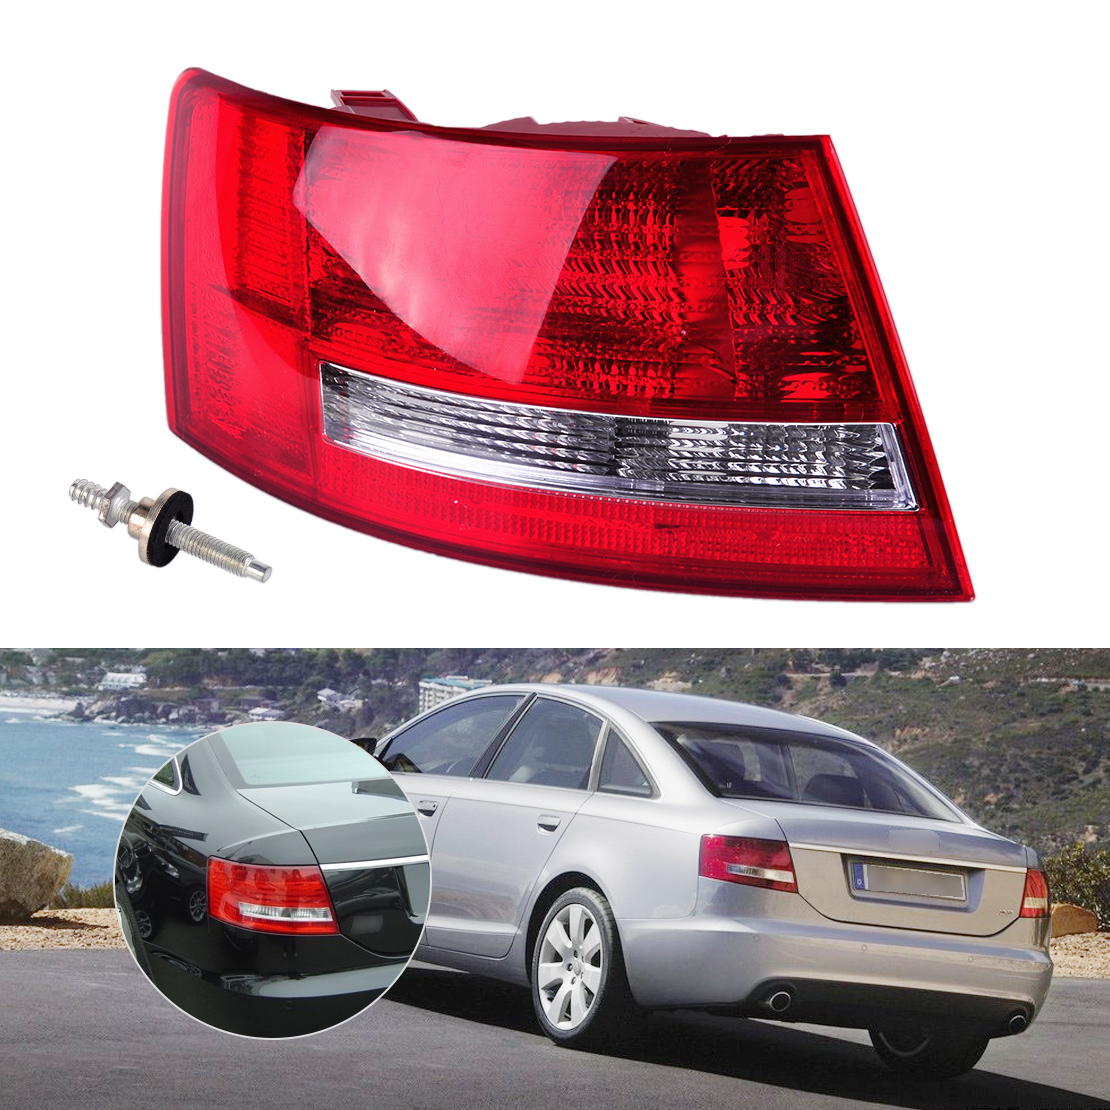 Dwcx rear tail left light taillight assembly lamp housing without bulb 4f5 945 095 l for